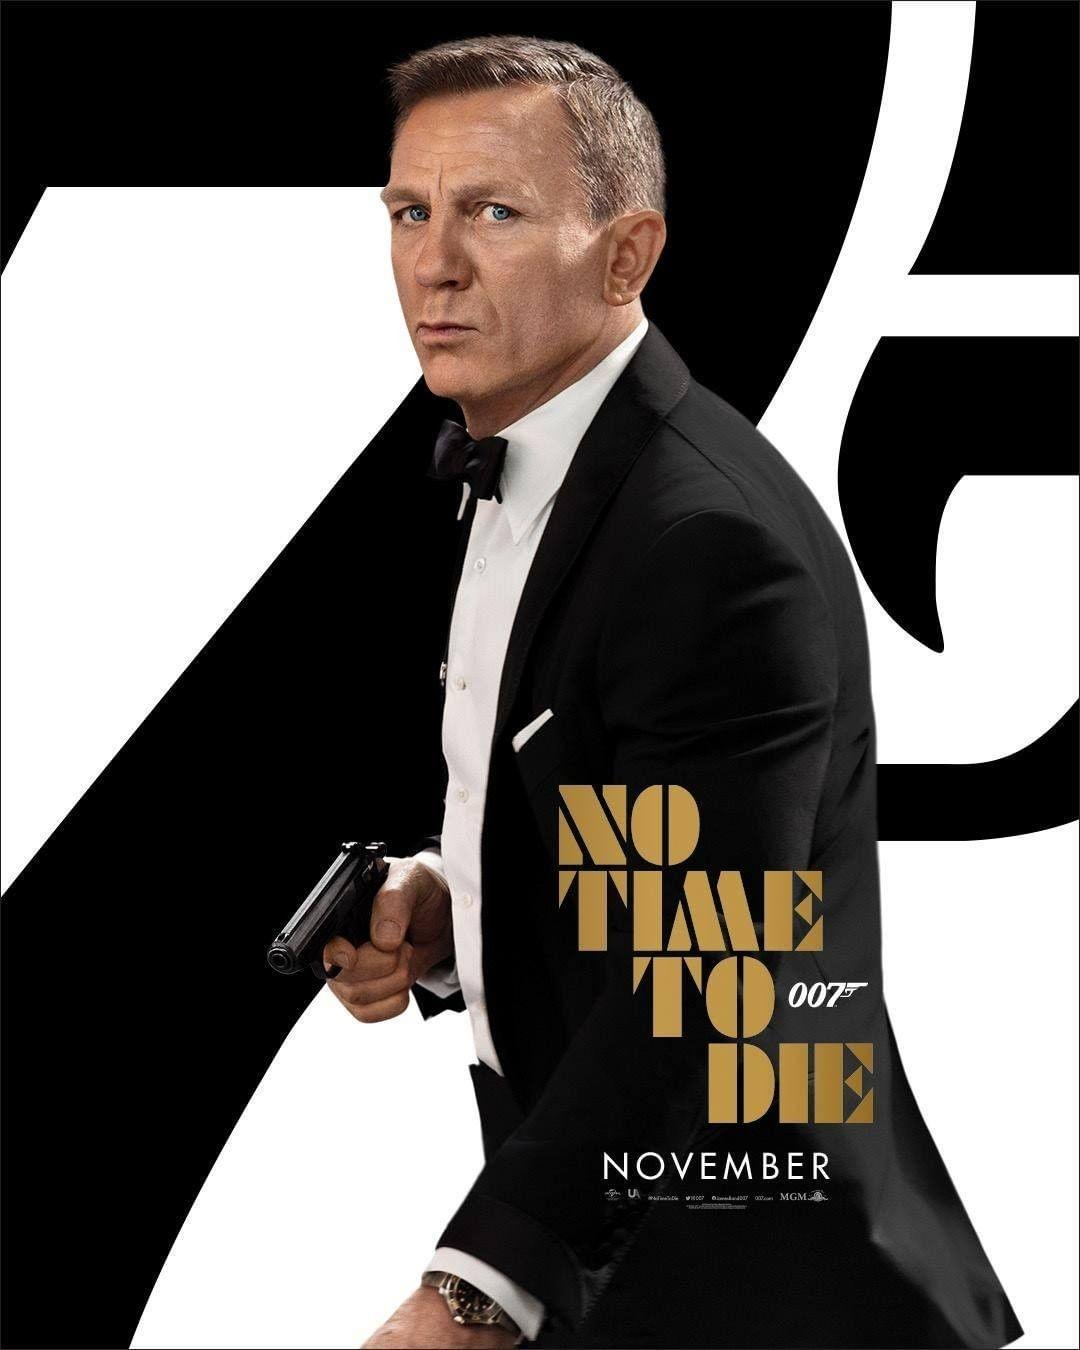 Nouvelle Bande Annonce Pour James Bond 007: No Time To Die